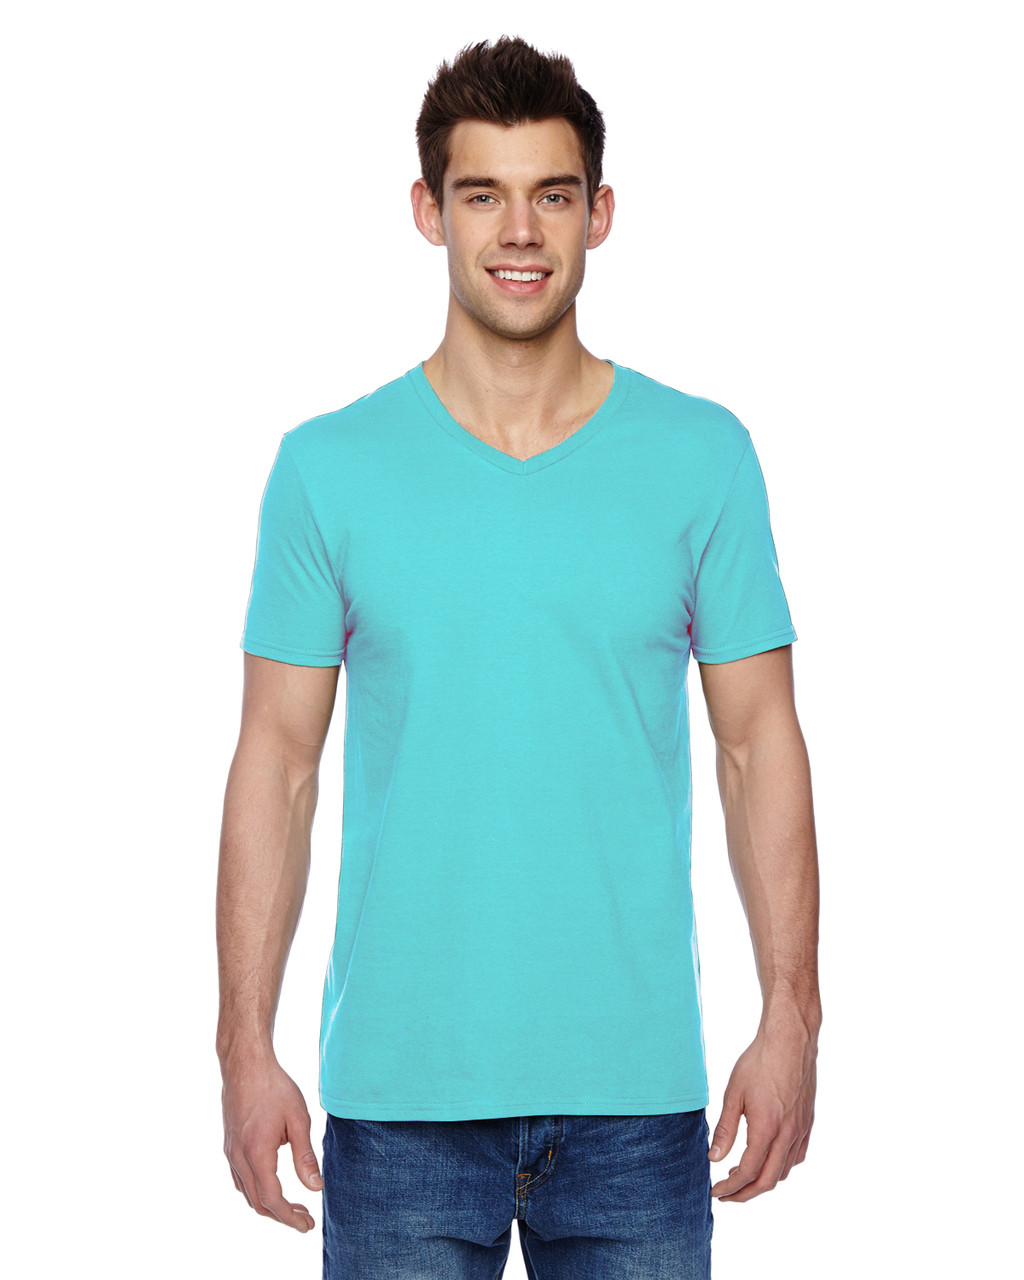 Scuba Blue SFVR Fruit of the Loom 100% Softspun Cotton Jersey V-Neck T-Shirt | Blankclothing.ca